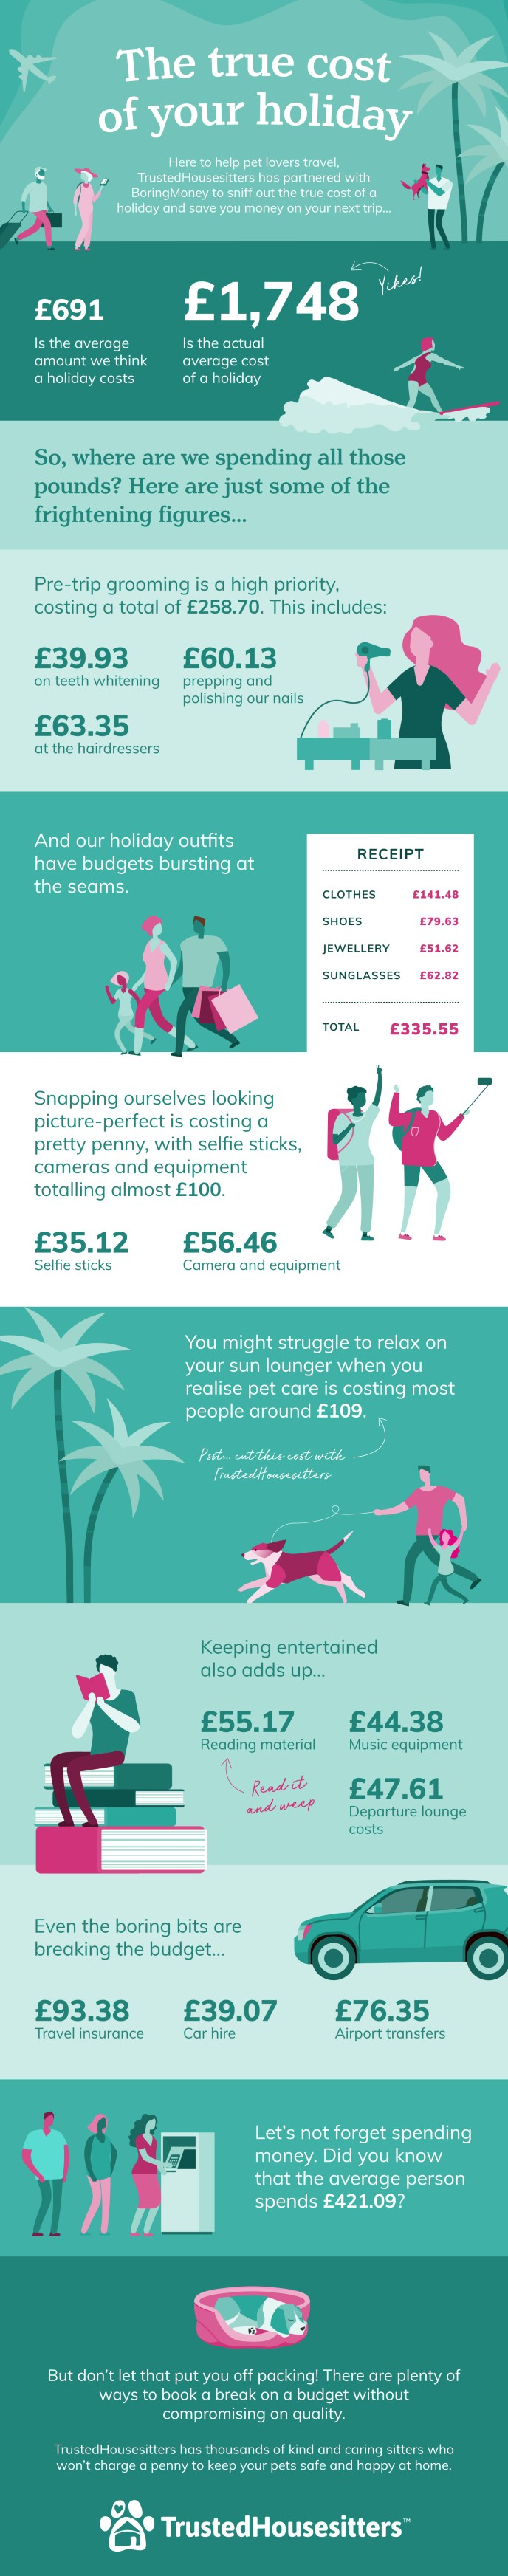 true-cost-of-your-holiday-infogr.jpg